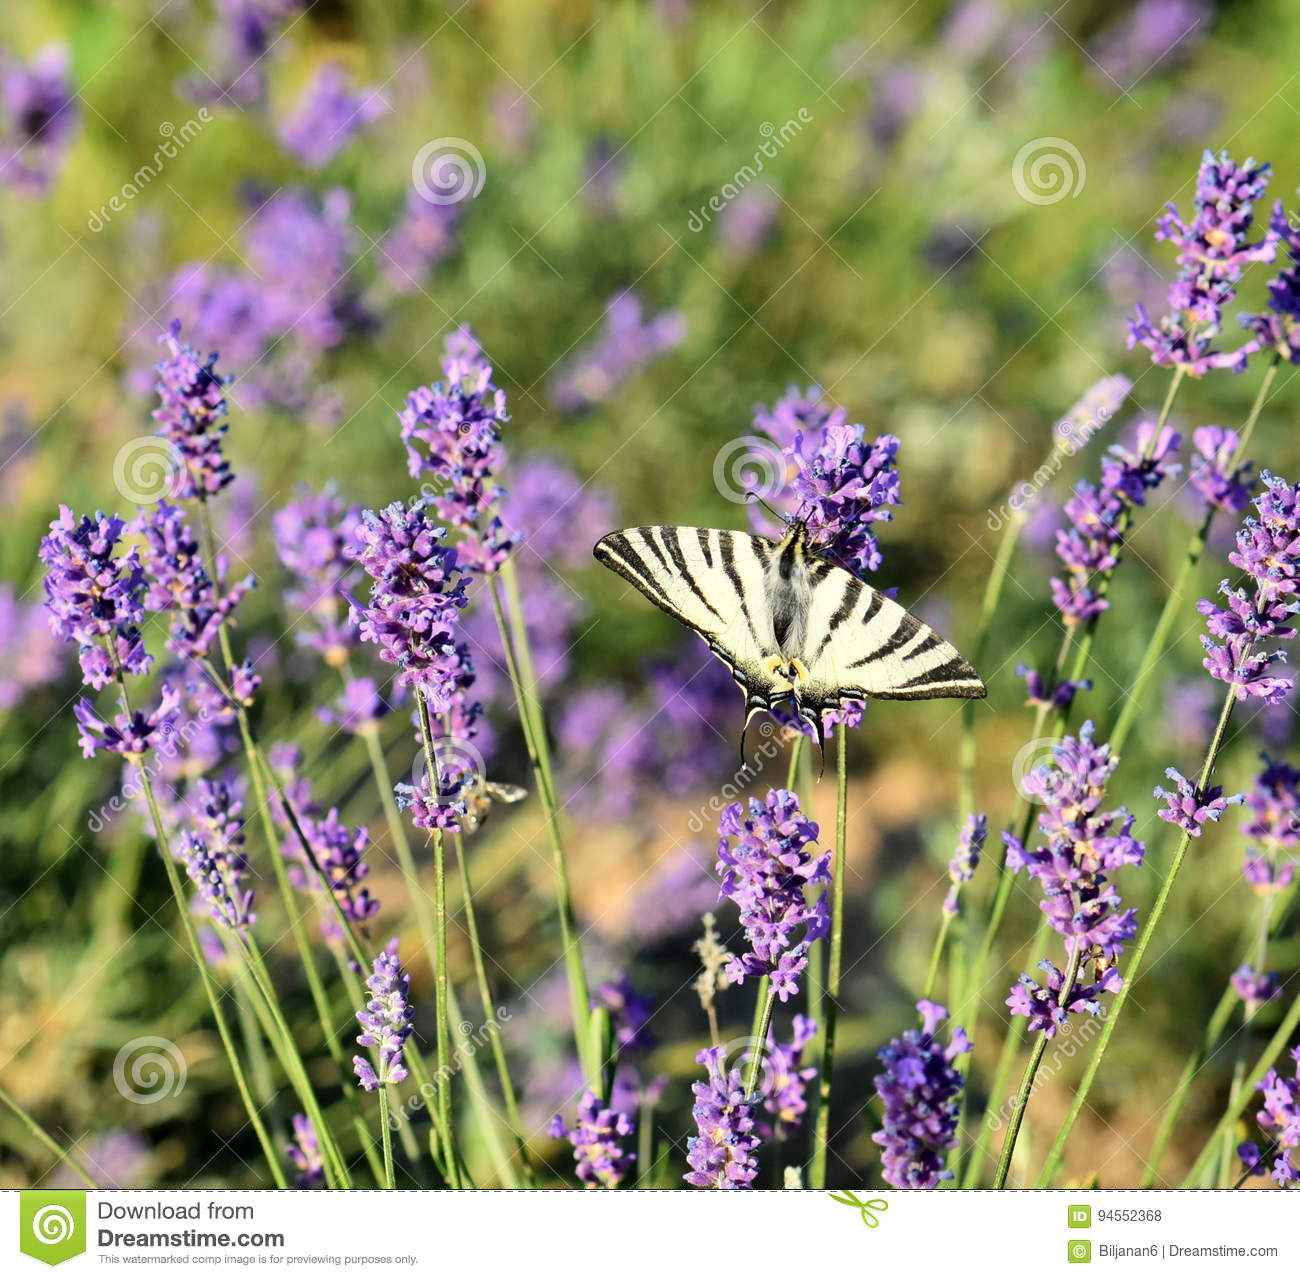 Beautiful lavender flowers in nature stock photo image of blooming beautiful field of lavender flowers in nature izmirmasajfo